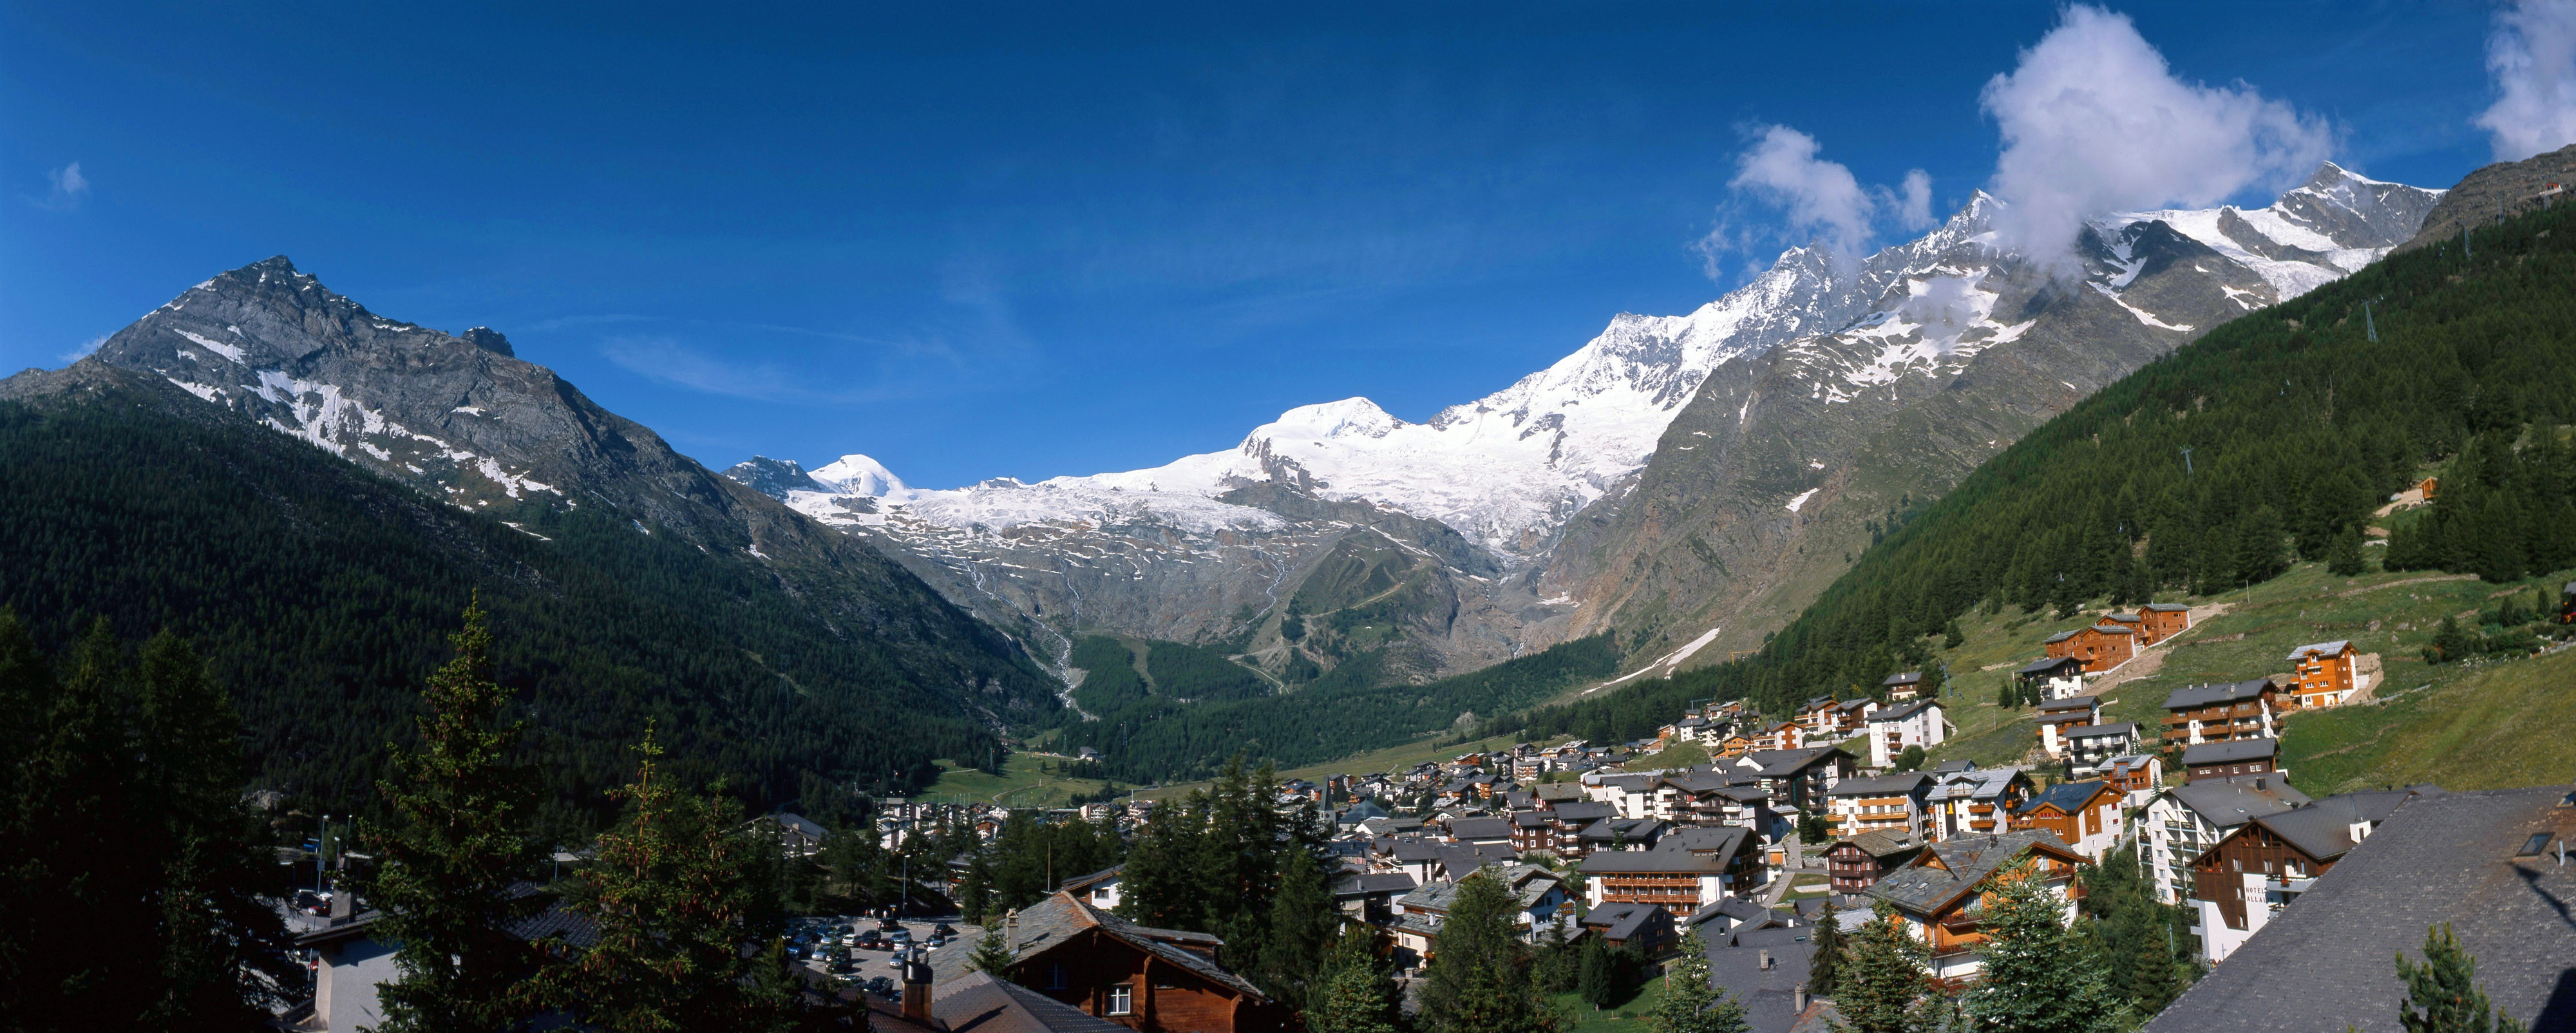 saas fee asian singles Hello :) this meetup is for people aged in their 20s and 30s who want to expand their social network, make new friends, discover new cultures you don't necessarily.